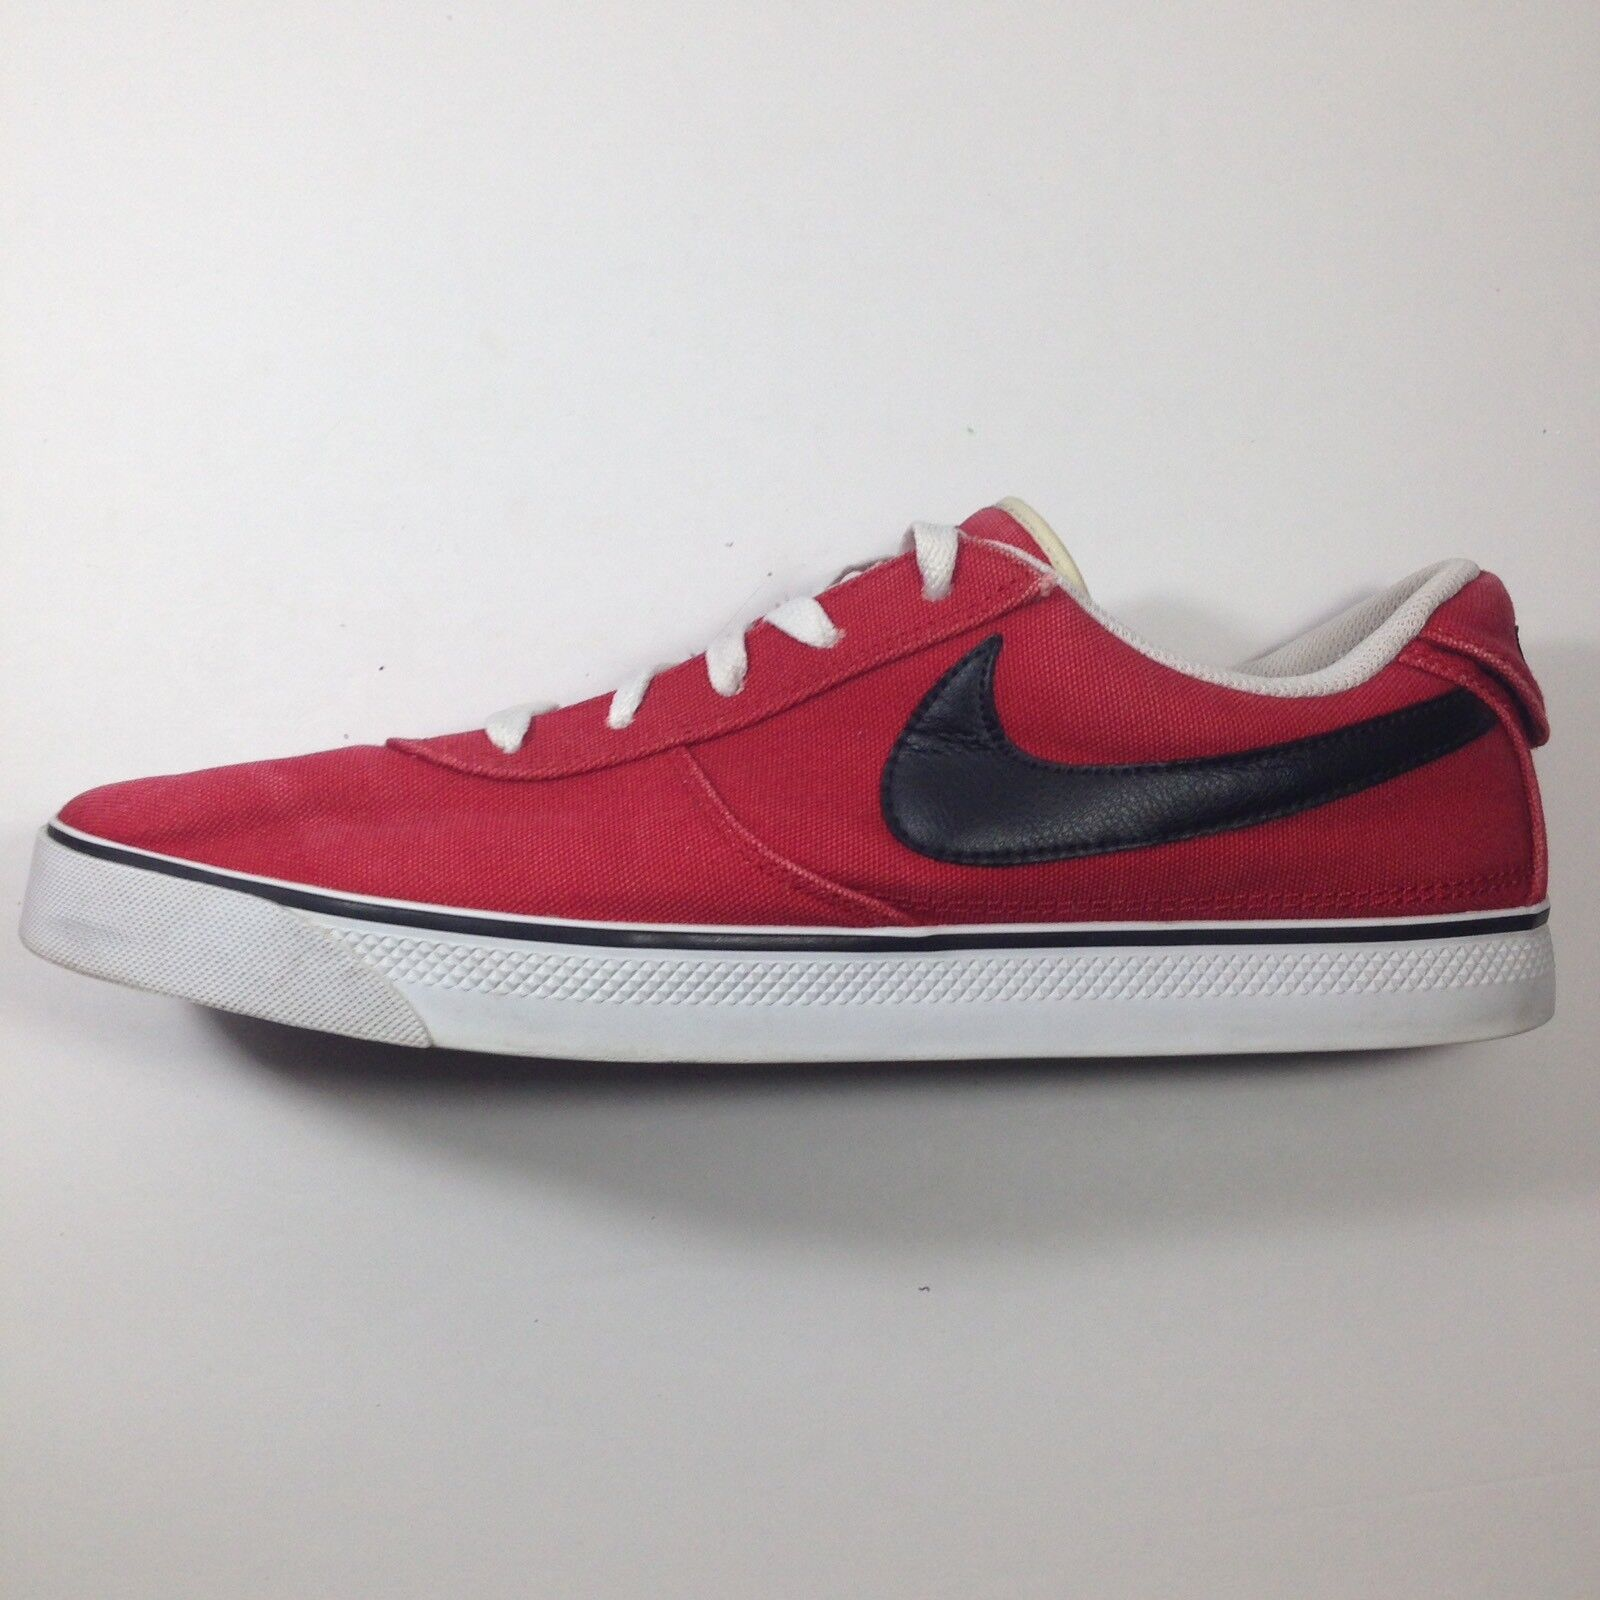 the latest 83dc7 fafa8 ... Rare Mavrk Low 2 Men s NIKE 6.0 Sneakers Sneakers Sneakers Red Canvas  Size 13 ea9d2e ...